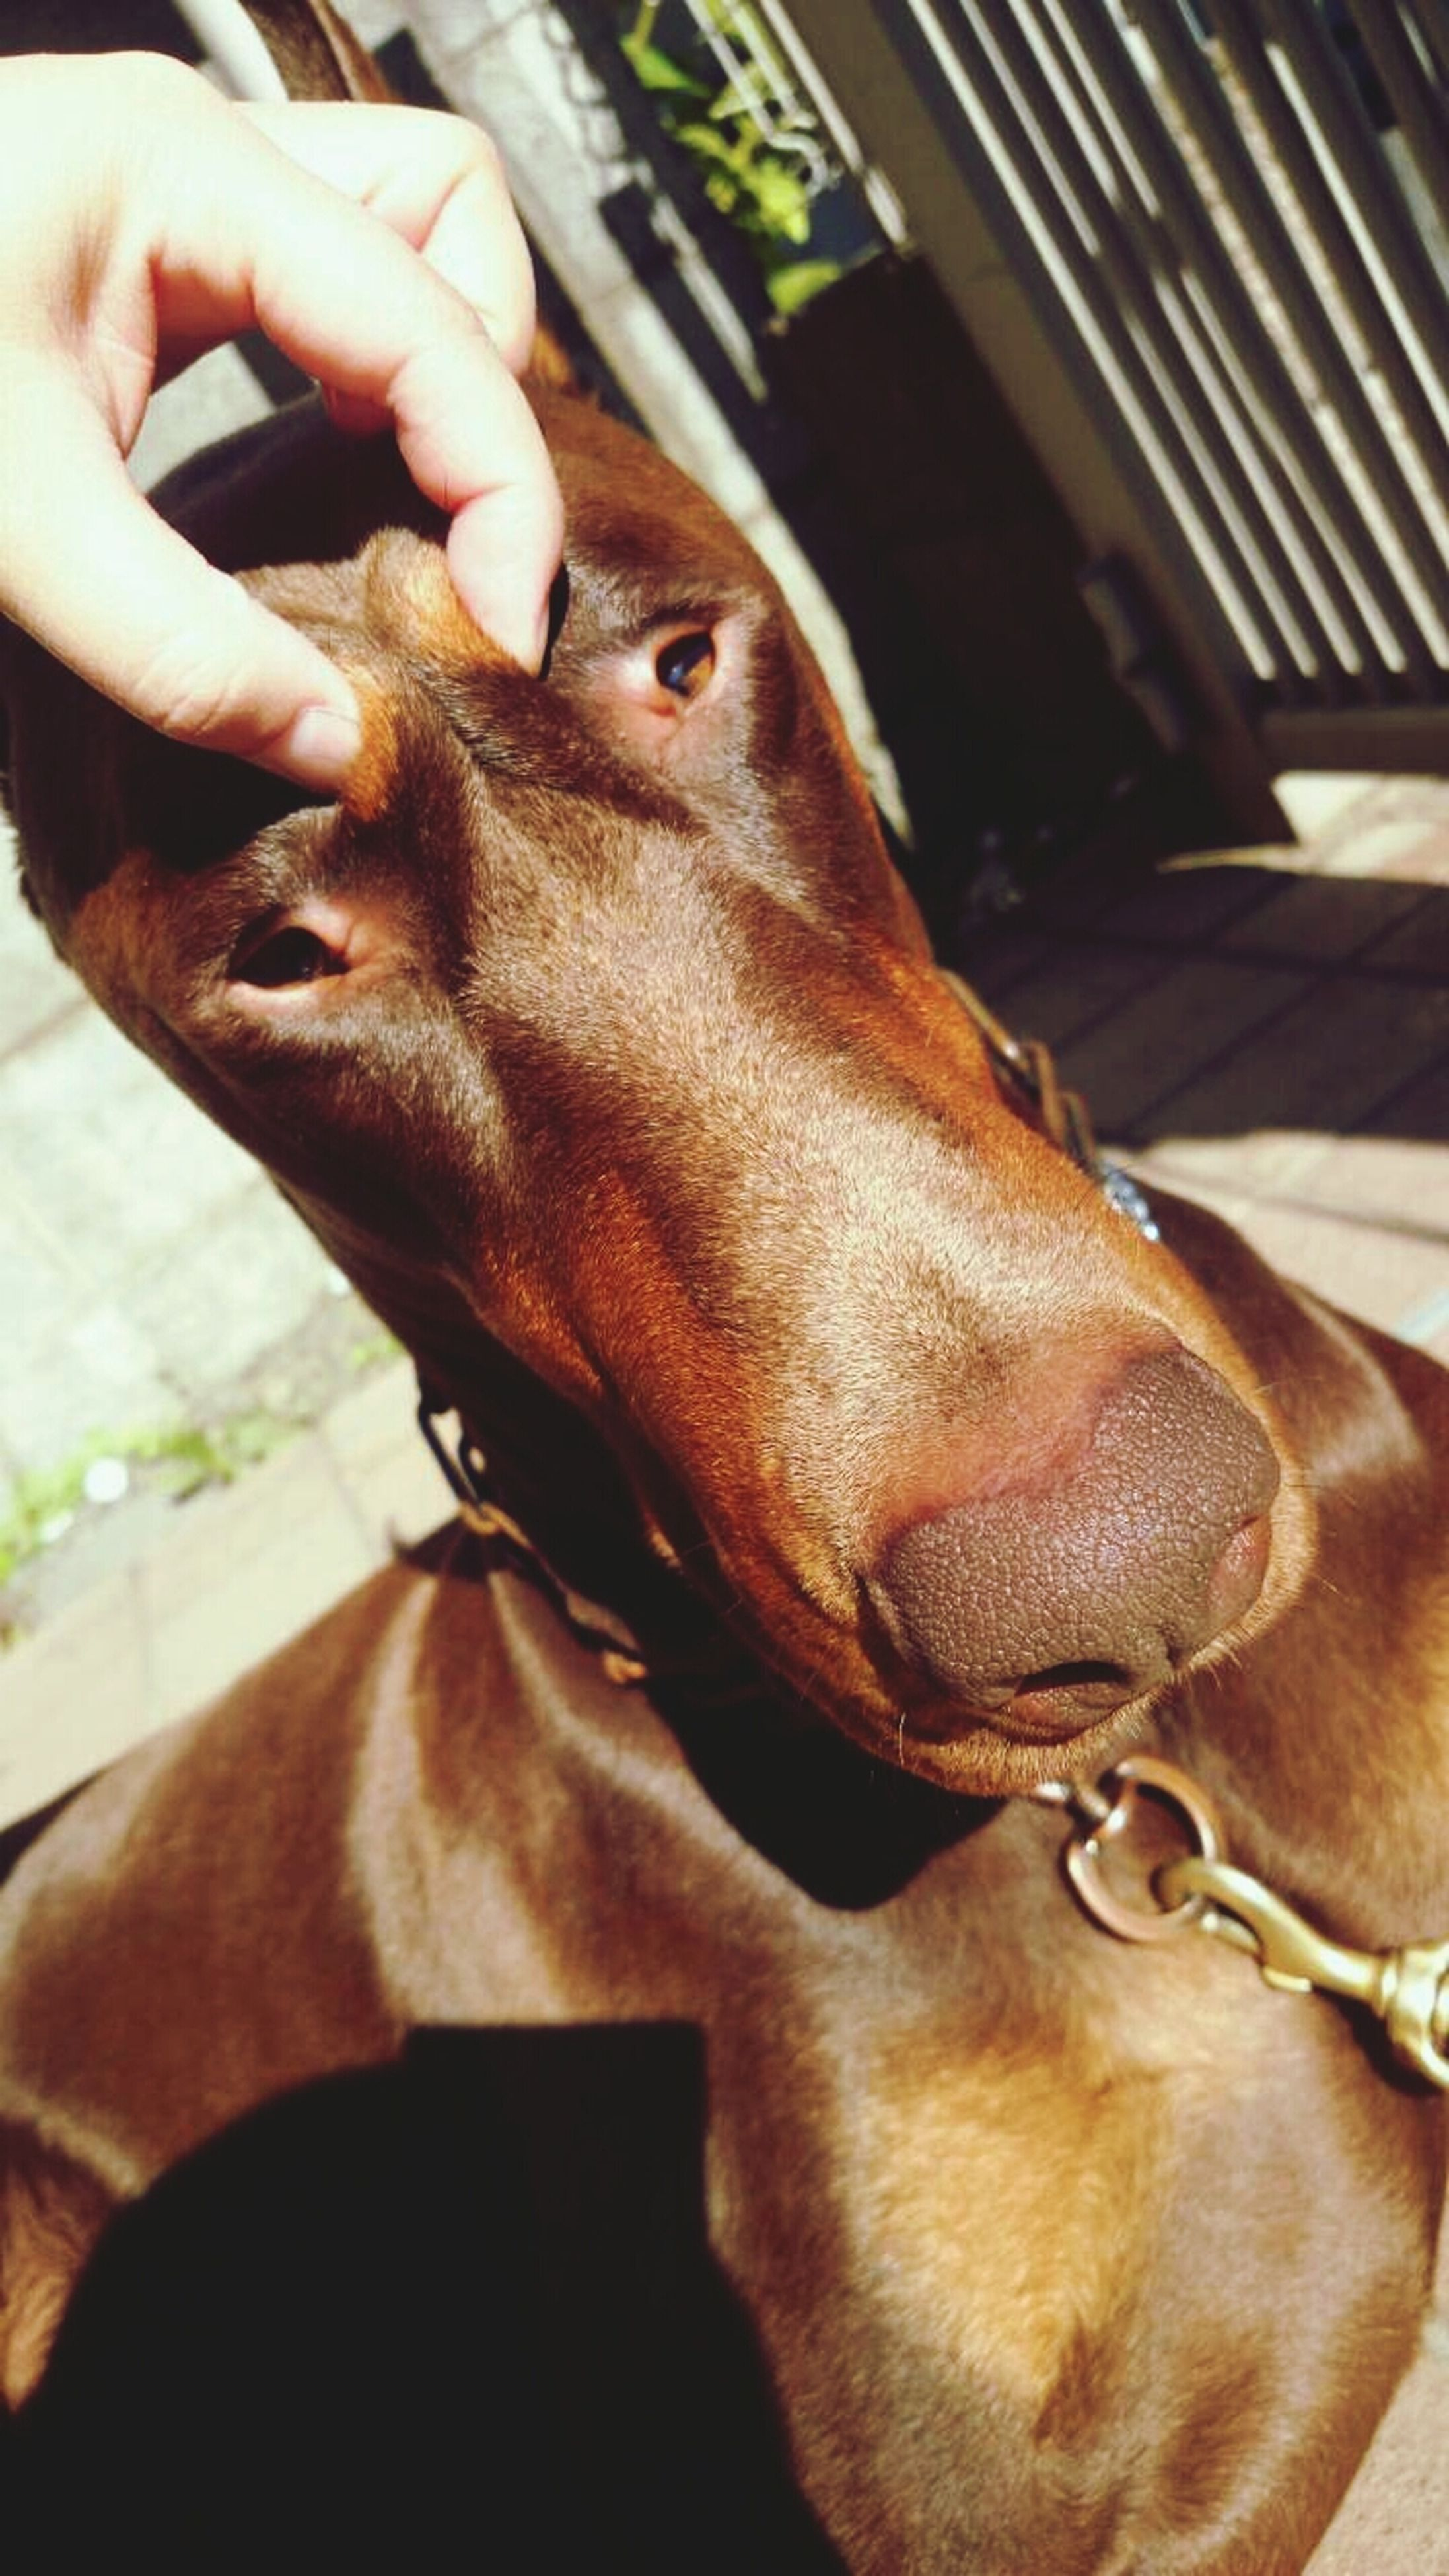 animal themes, domestic animals, one animal, mammal, dog, animal head, pets, indoors, close-up, part of, animal body part, horse, brown, focus on foreground, pet collar, portrait, person, relaxation, cropped, zoology